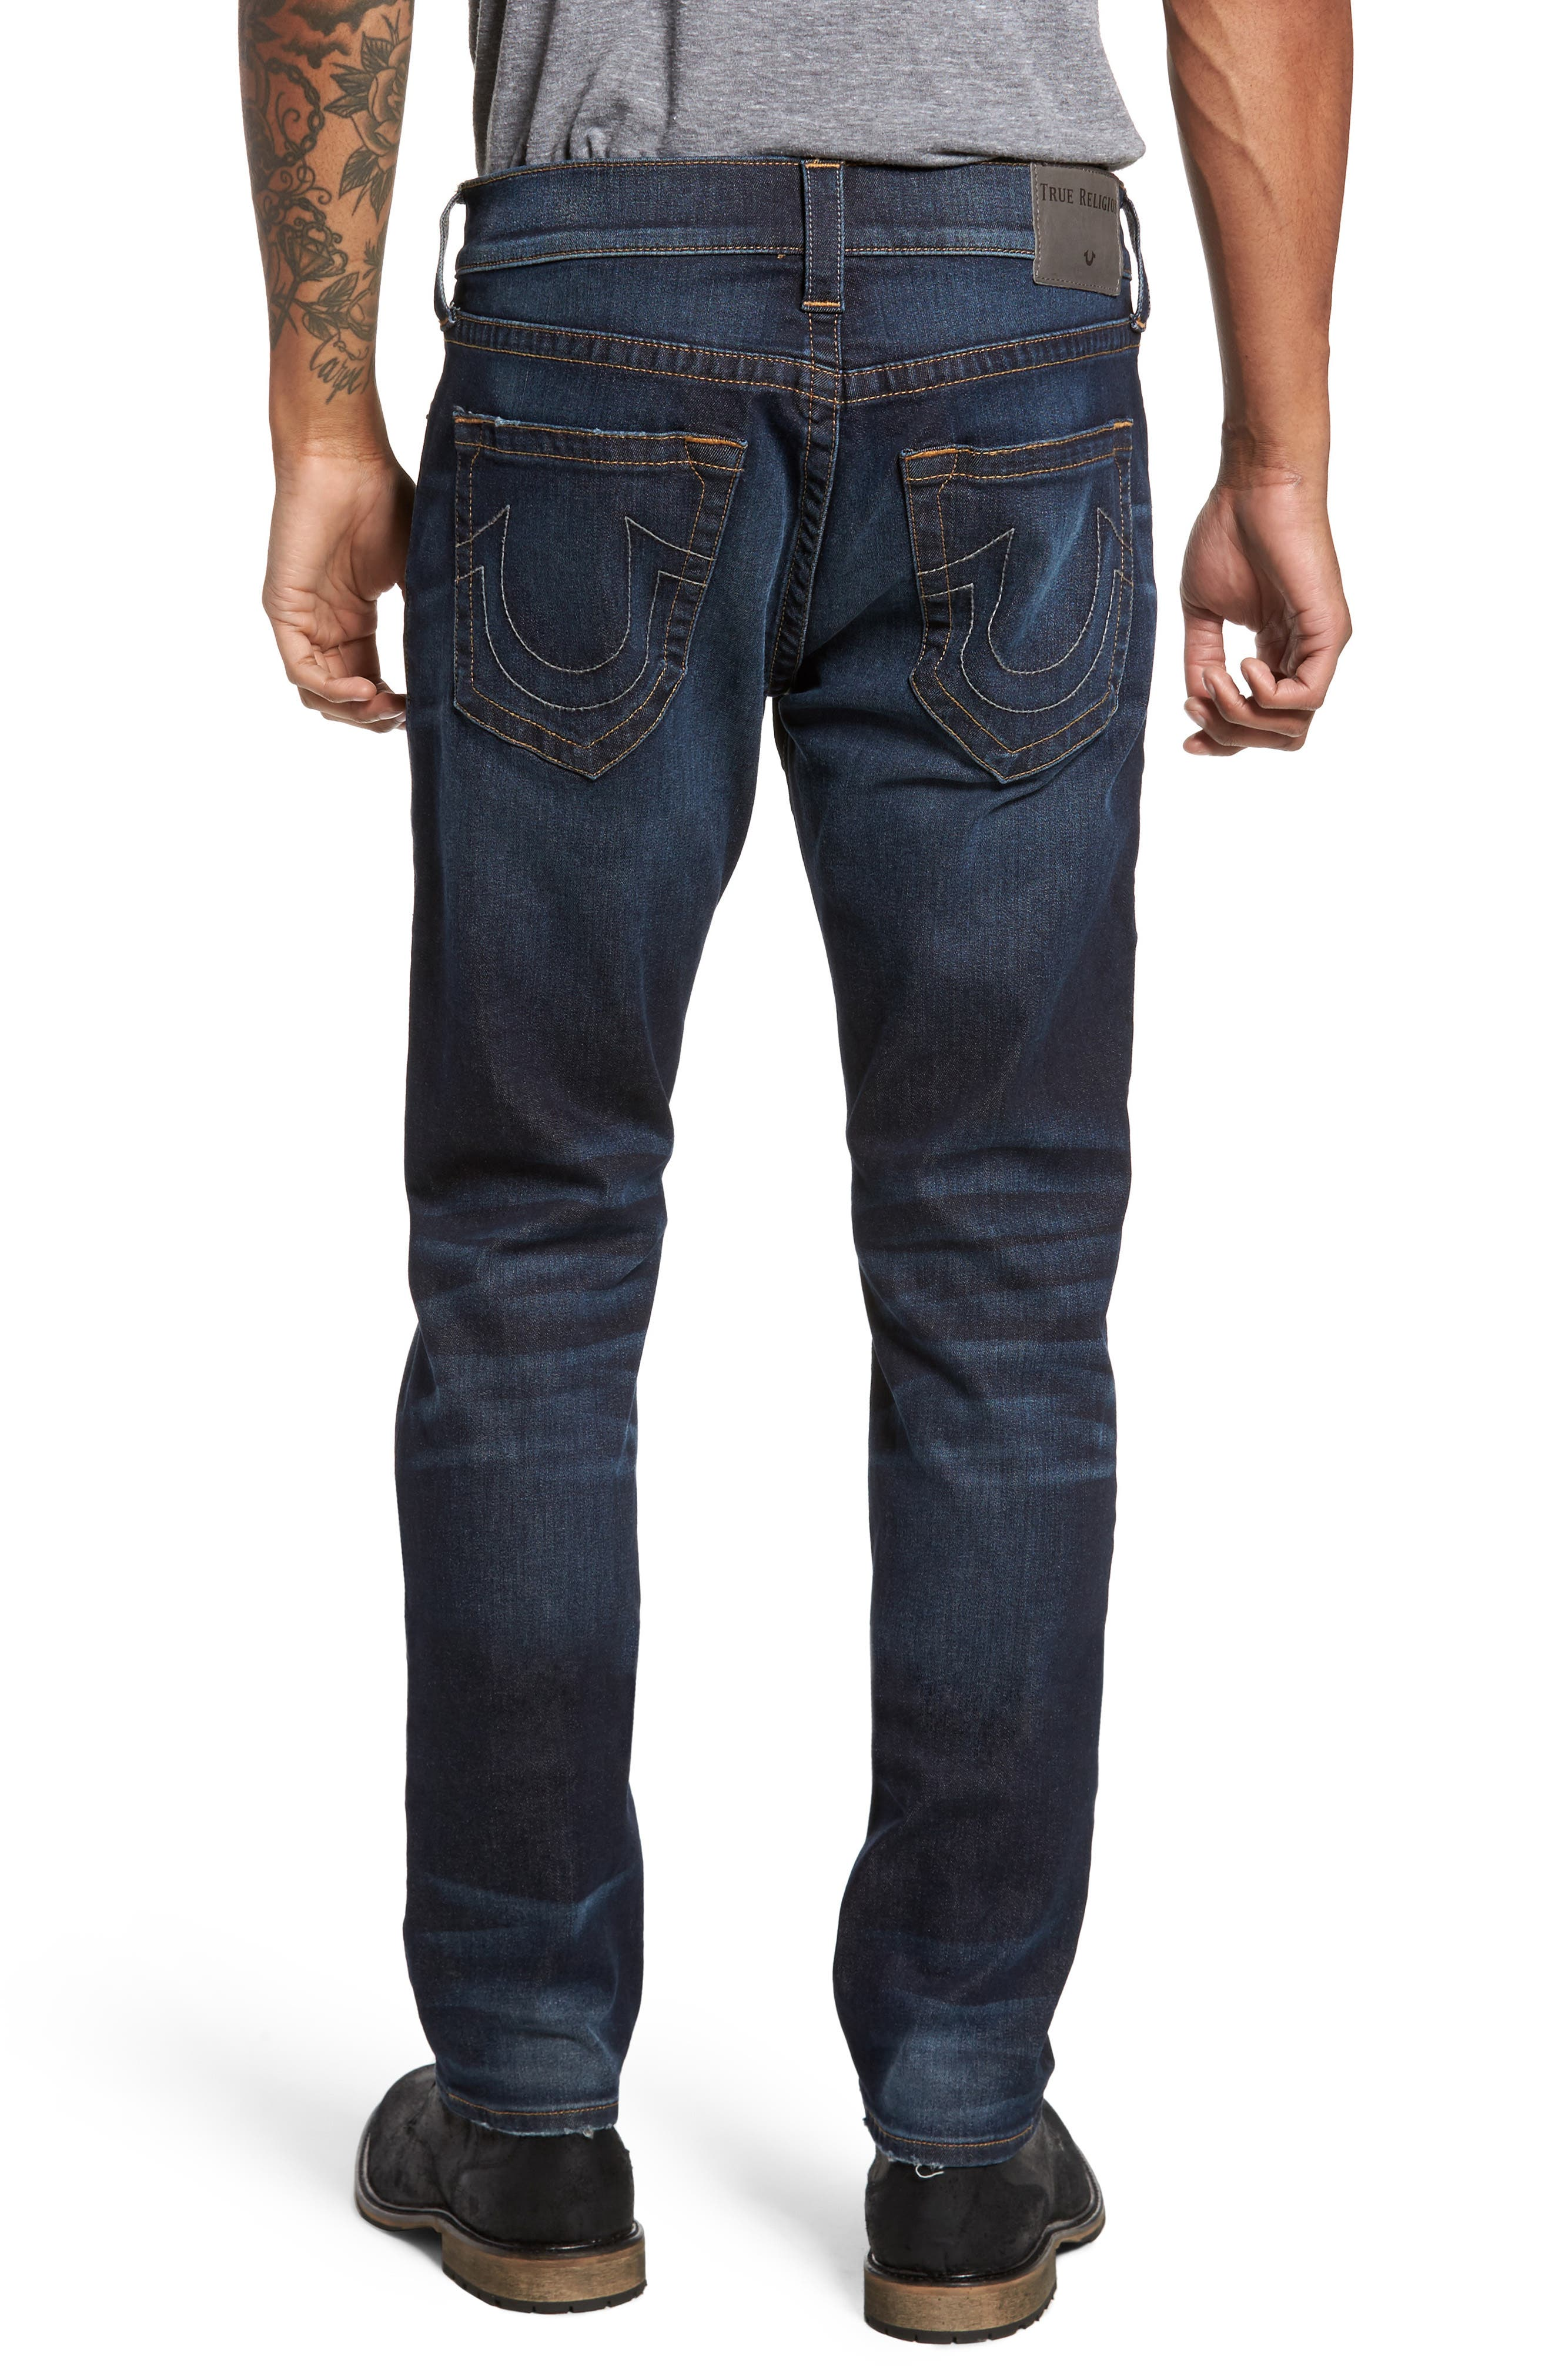 Rocco Skinny Fit Jeans,                             Alternate thumbnail 2, color,                             403